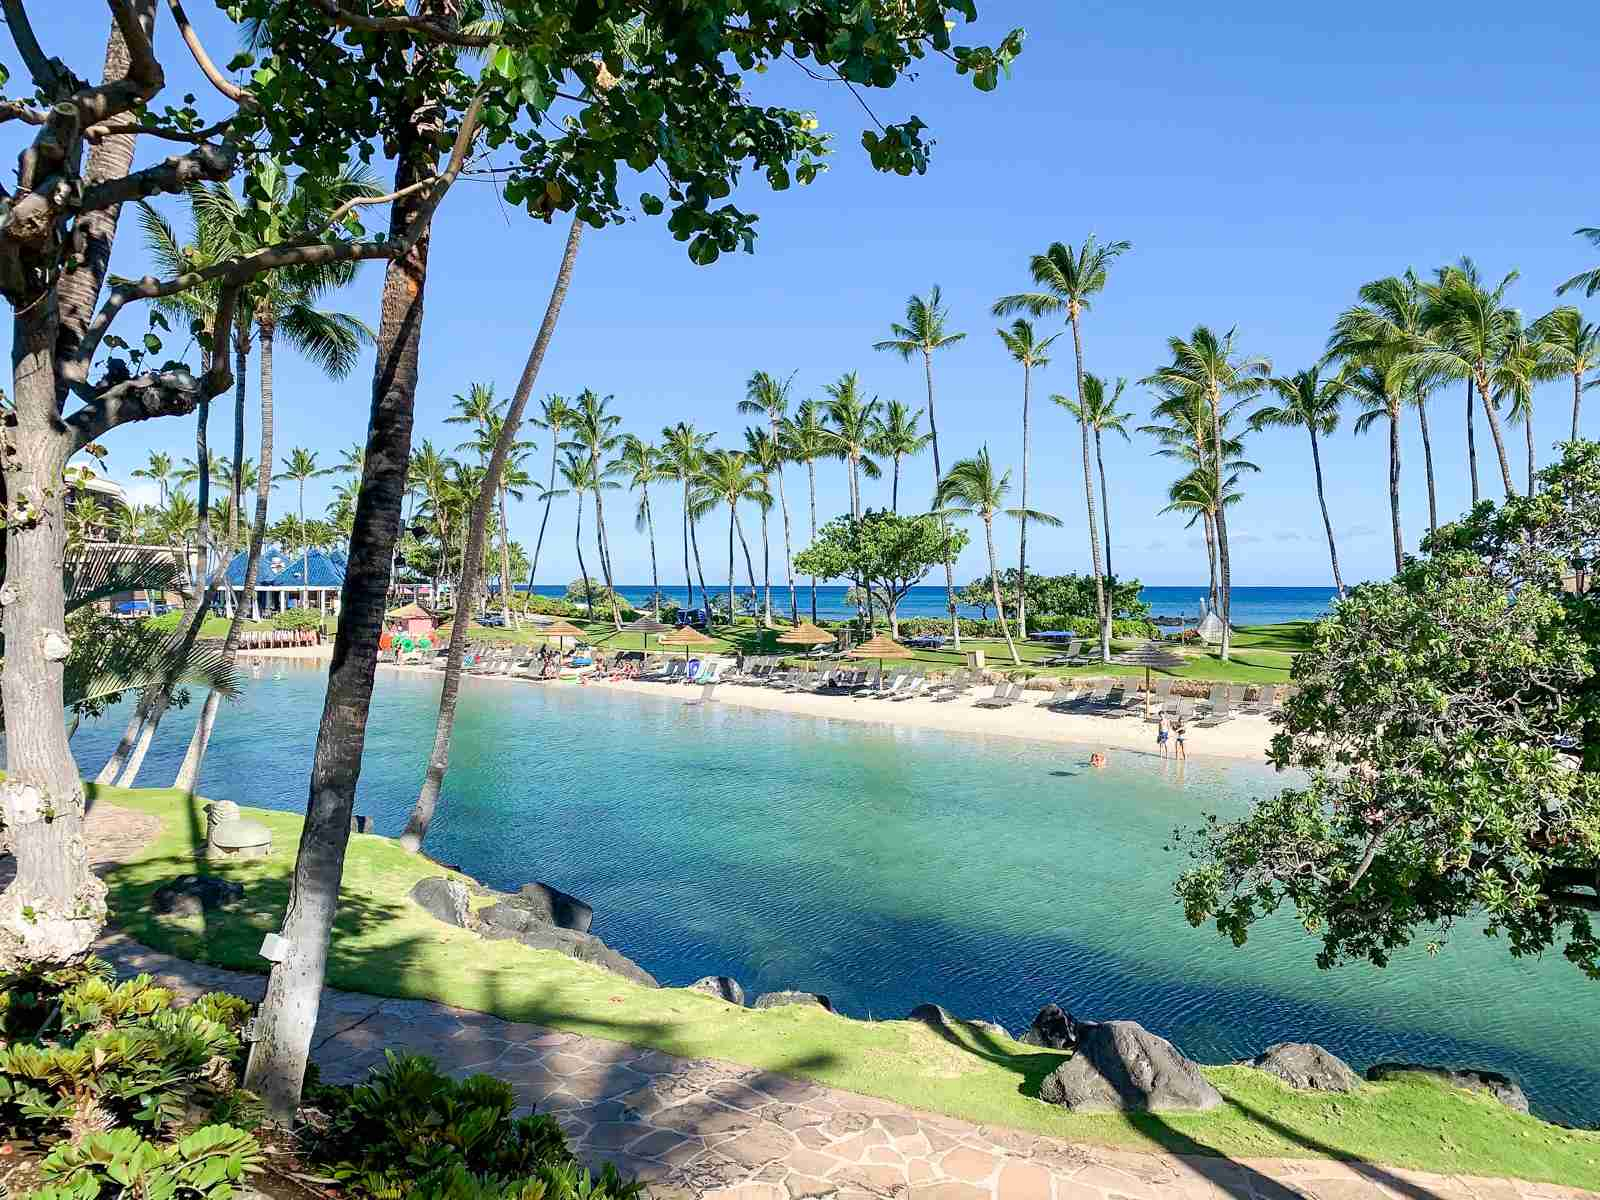 Hilton Waikoloa (Photo by Summer Hull / The Points Guy)